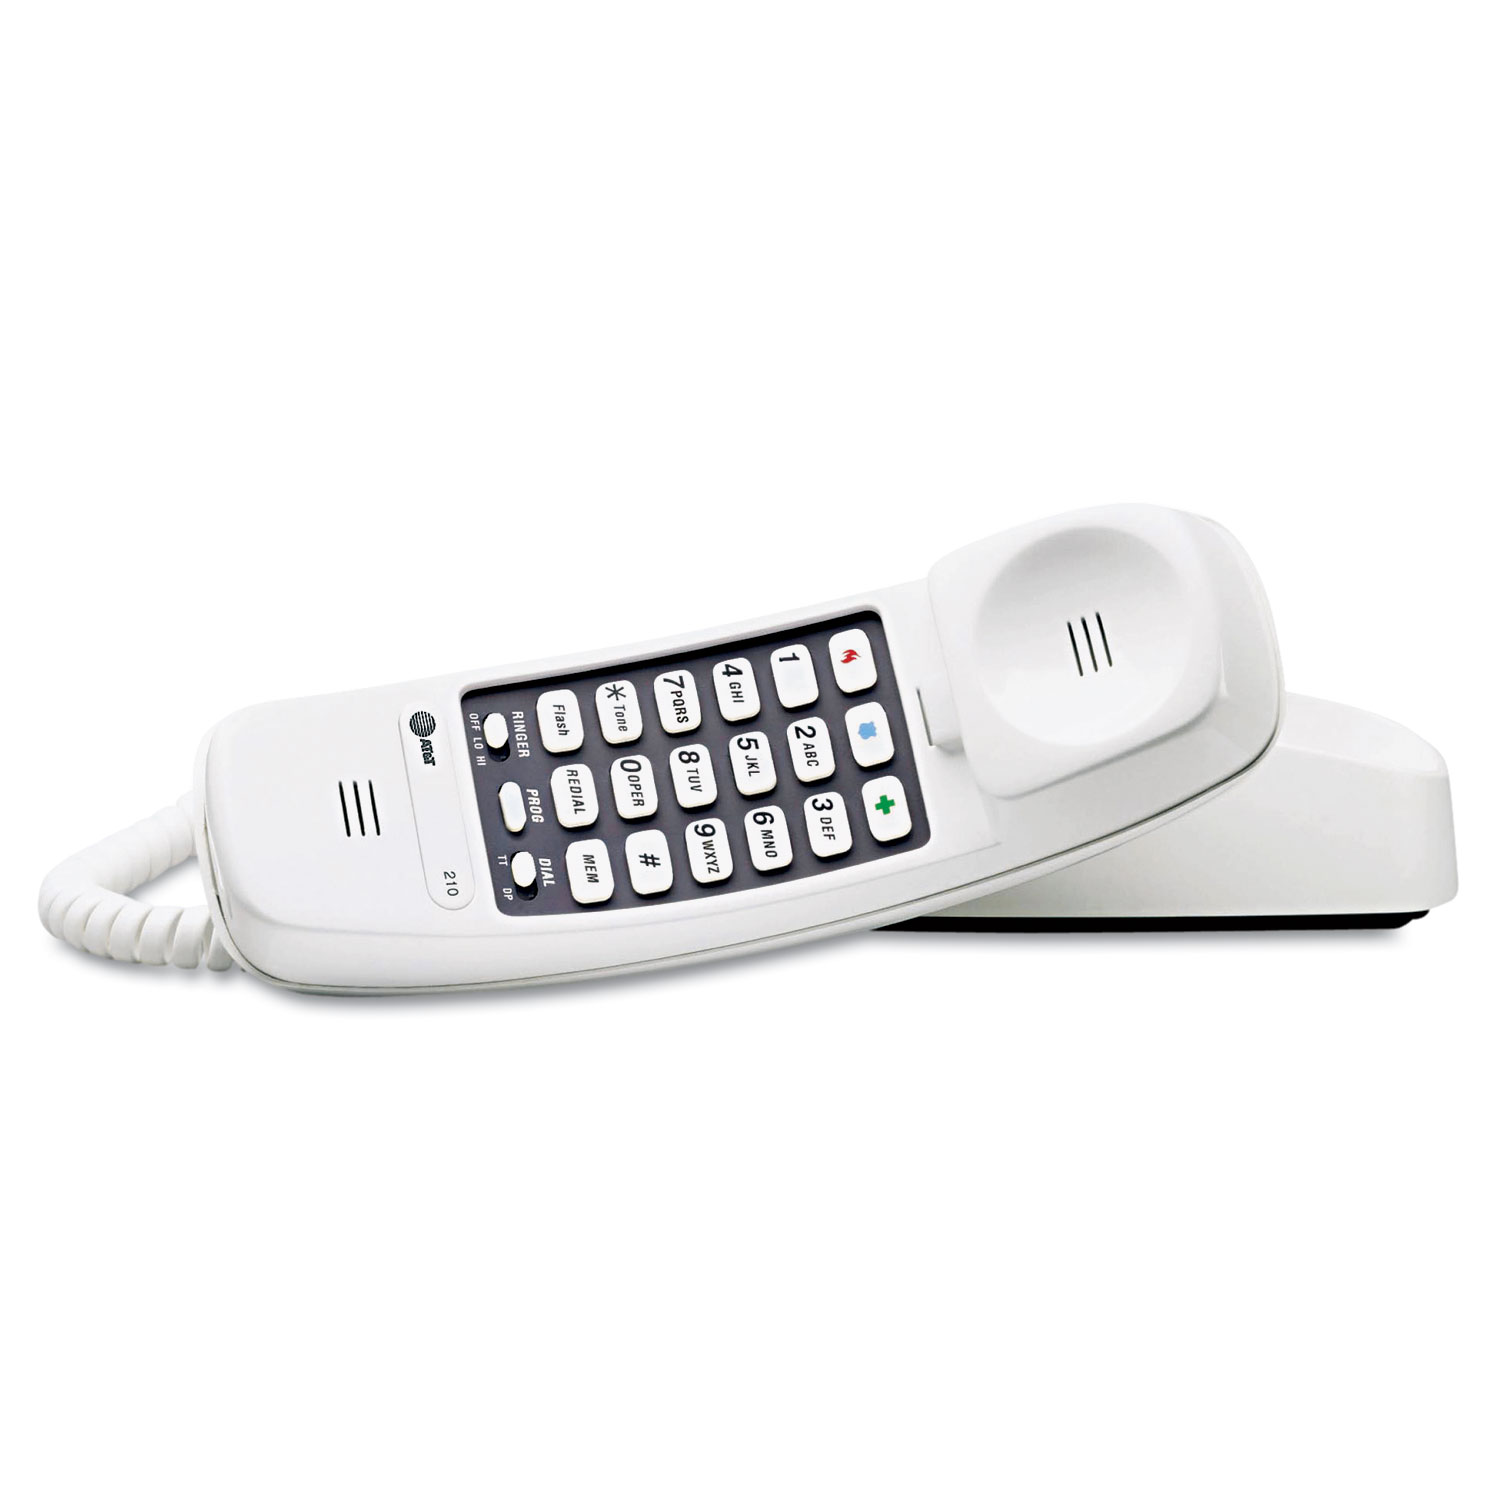 PHONE,210W,TRIMLINE,WHT